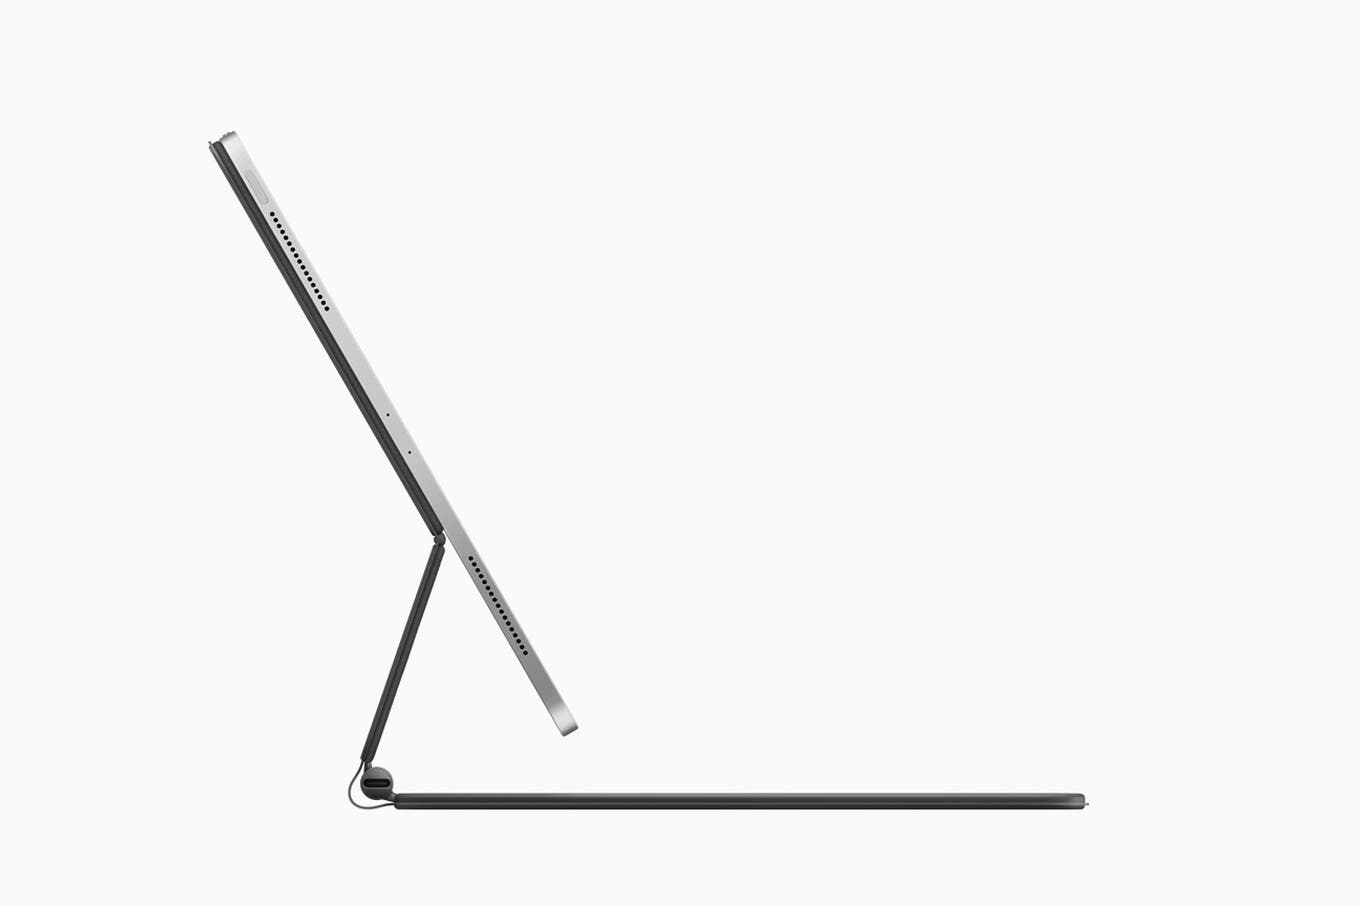 New iPad Pro, like a notebook: Apple renewed its tablet with a keyboard with touchpad and double camera